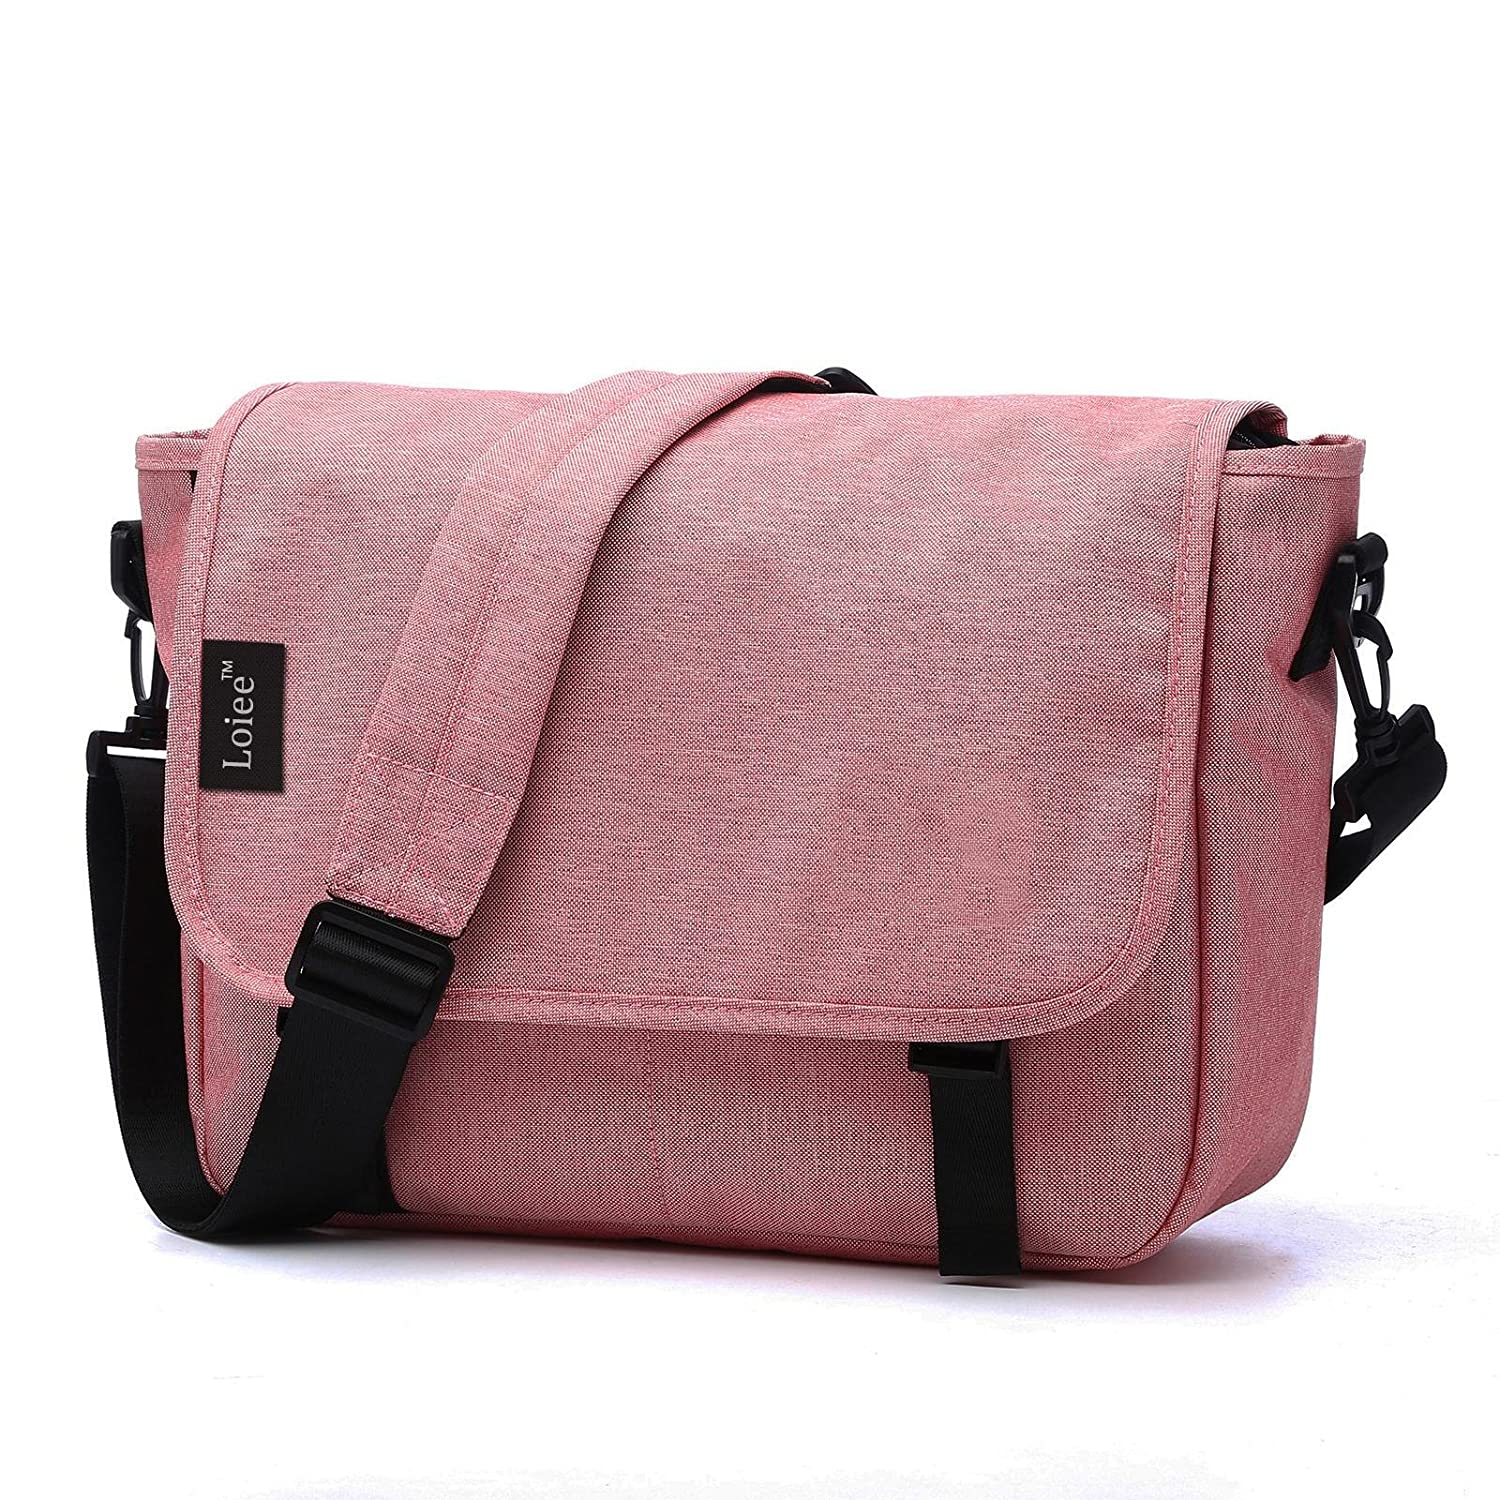 1a5553044a Loiee 14 inches Men s Classic Messenger Bag Life Boost Vintage Canvas  Satchel Messenger Laptop Shoulder Crossbody Sling Bag for All-Purpose  Use